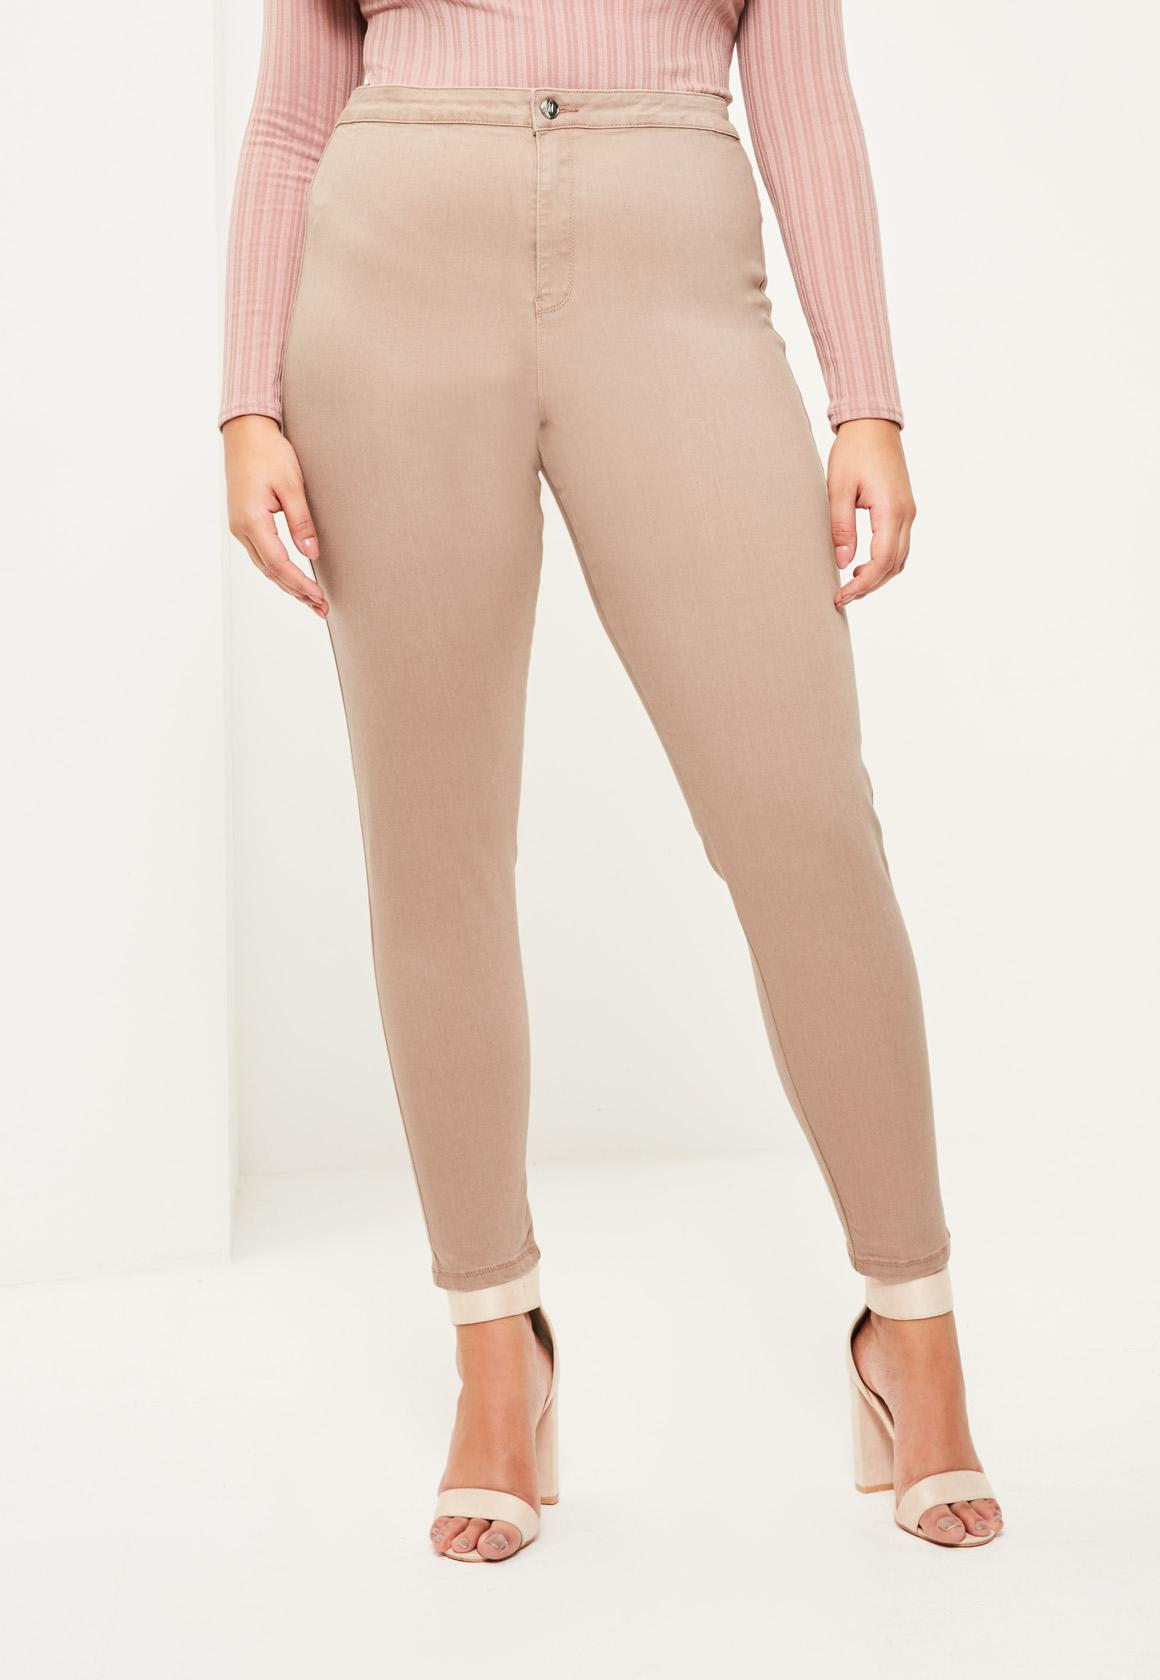 21ef6c7f547 Missguided - Plus Size Camel High Waisted Skinny Jeans